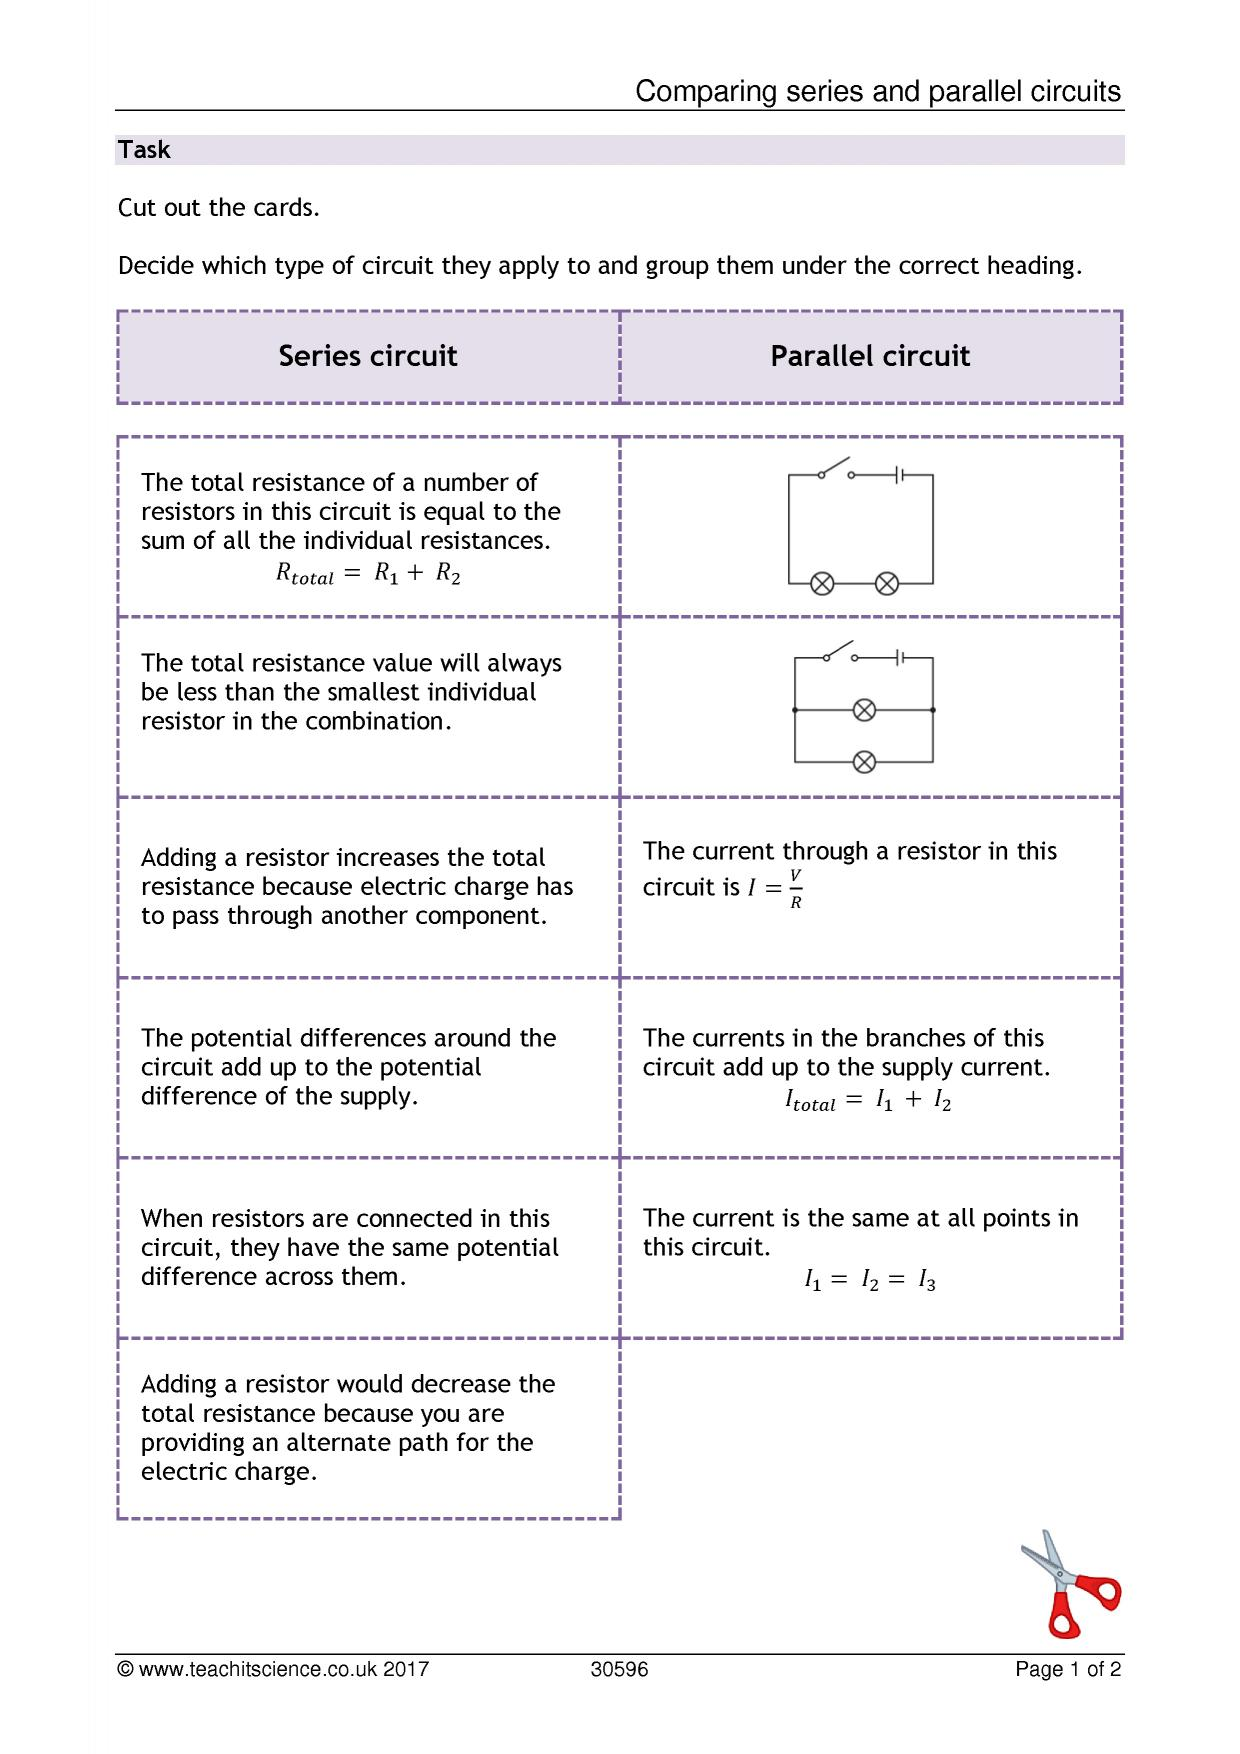 Comparison Parallel Circuit Series Wiring Diagram And Ebooks Example Of Comparing Circuits Rh Teachitscience Co Uk Electrical